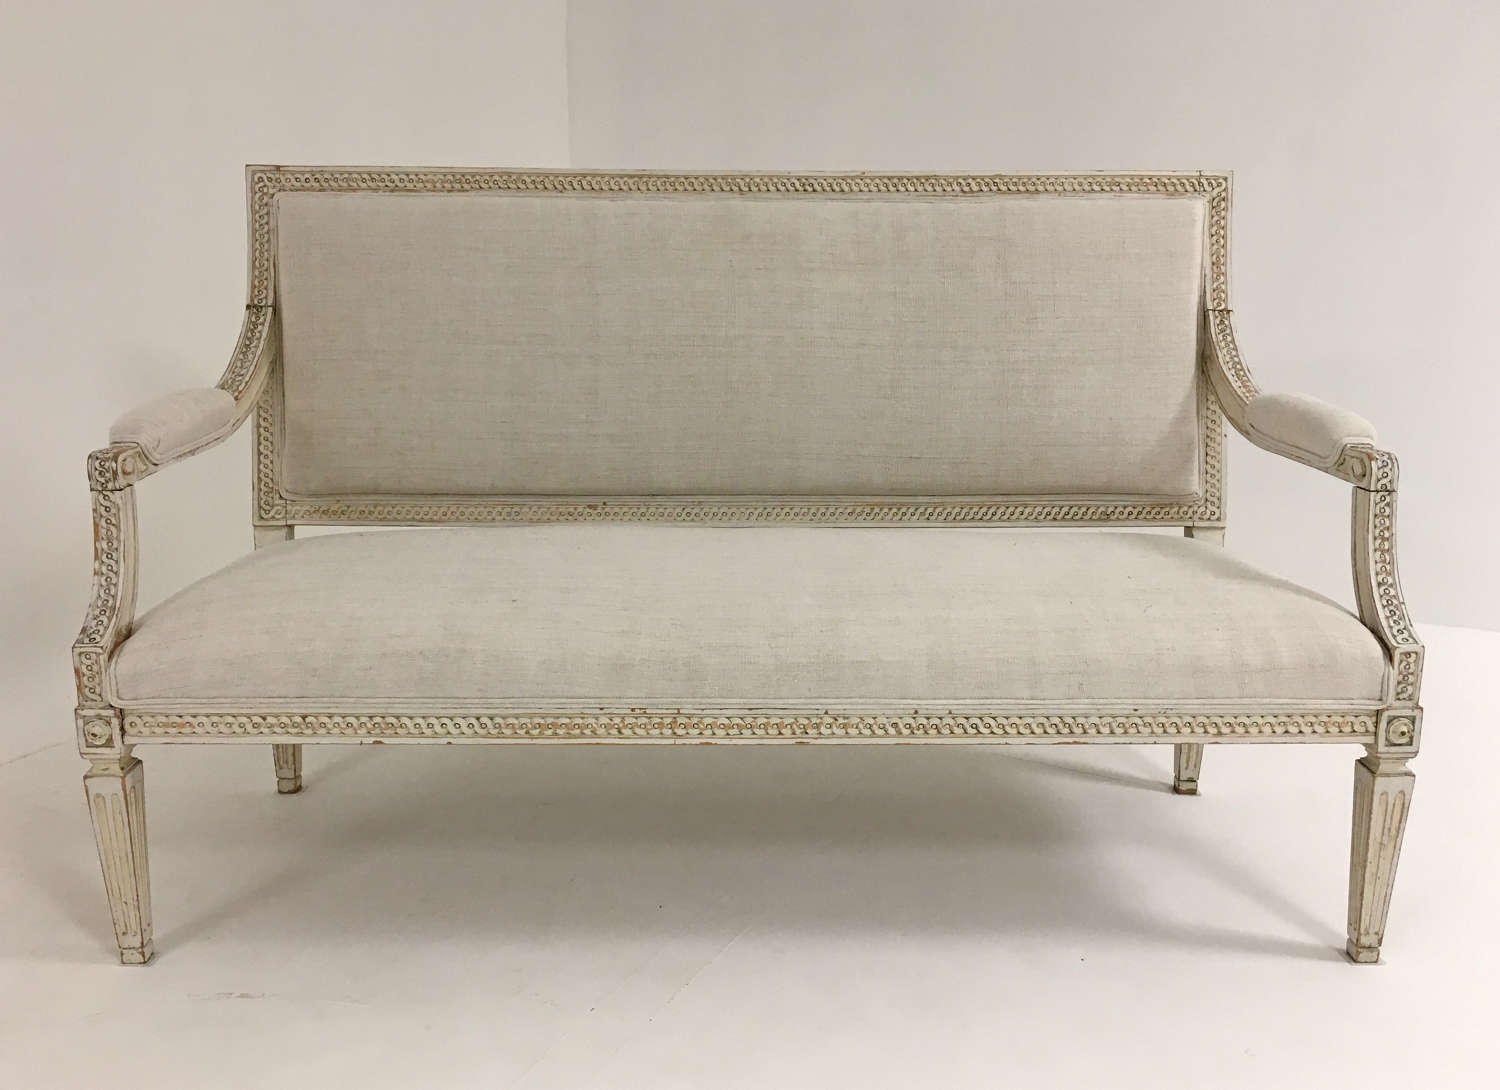 Superb 19th c Gustavian Style Sofa - circa 1840